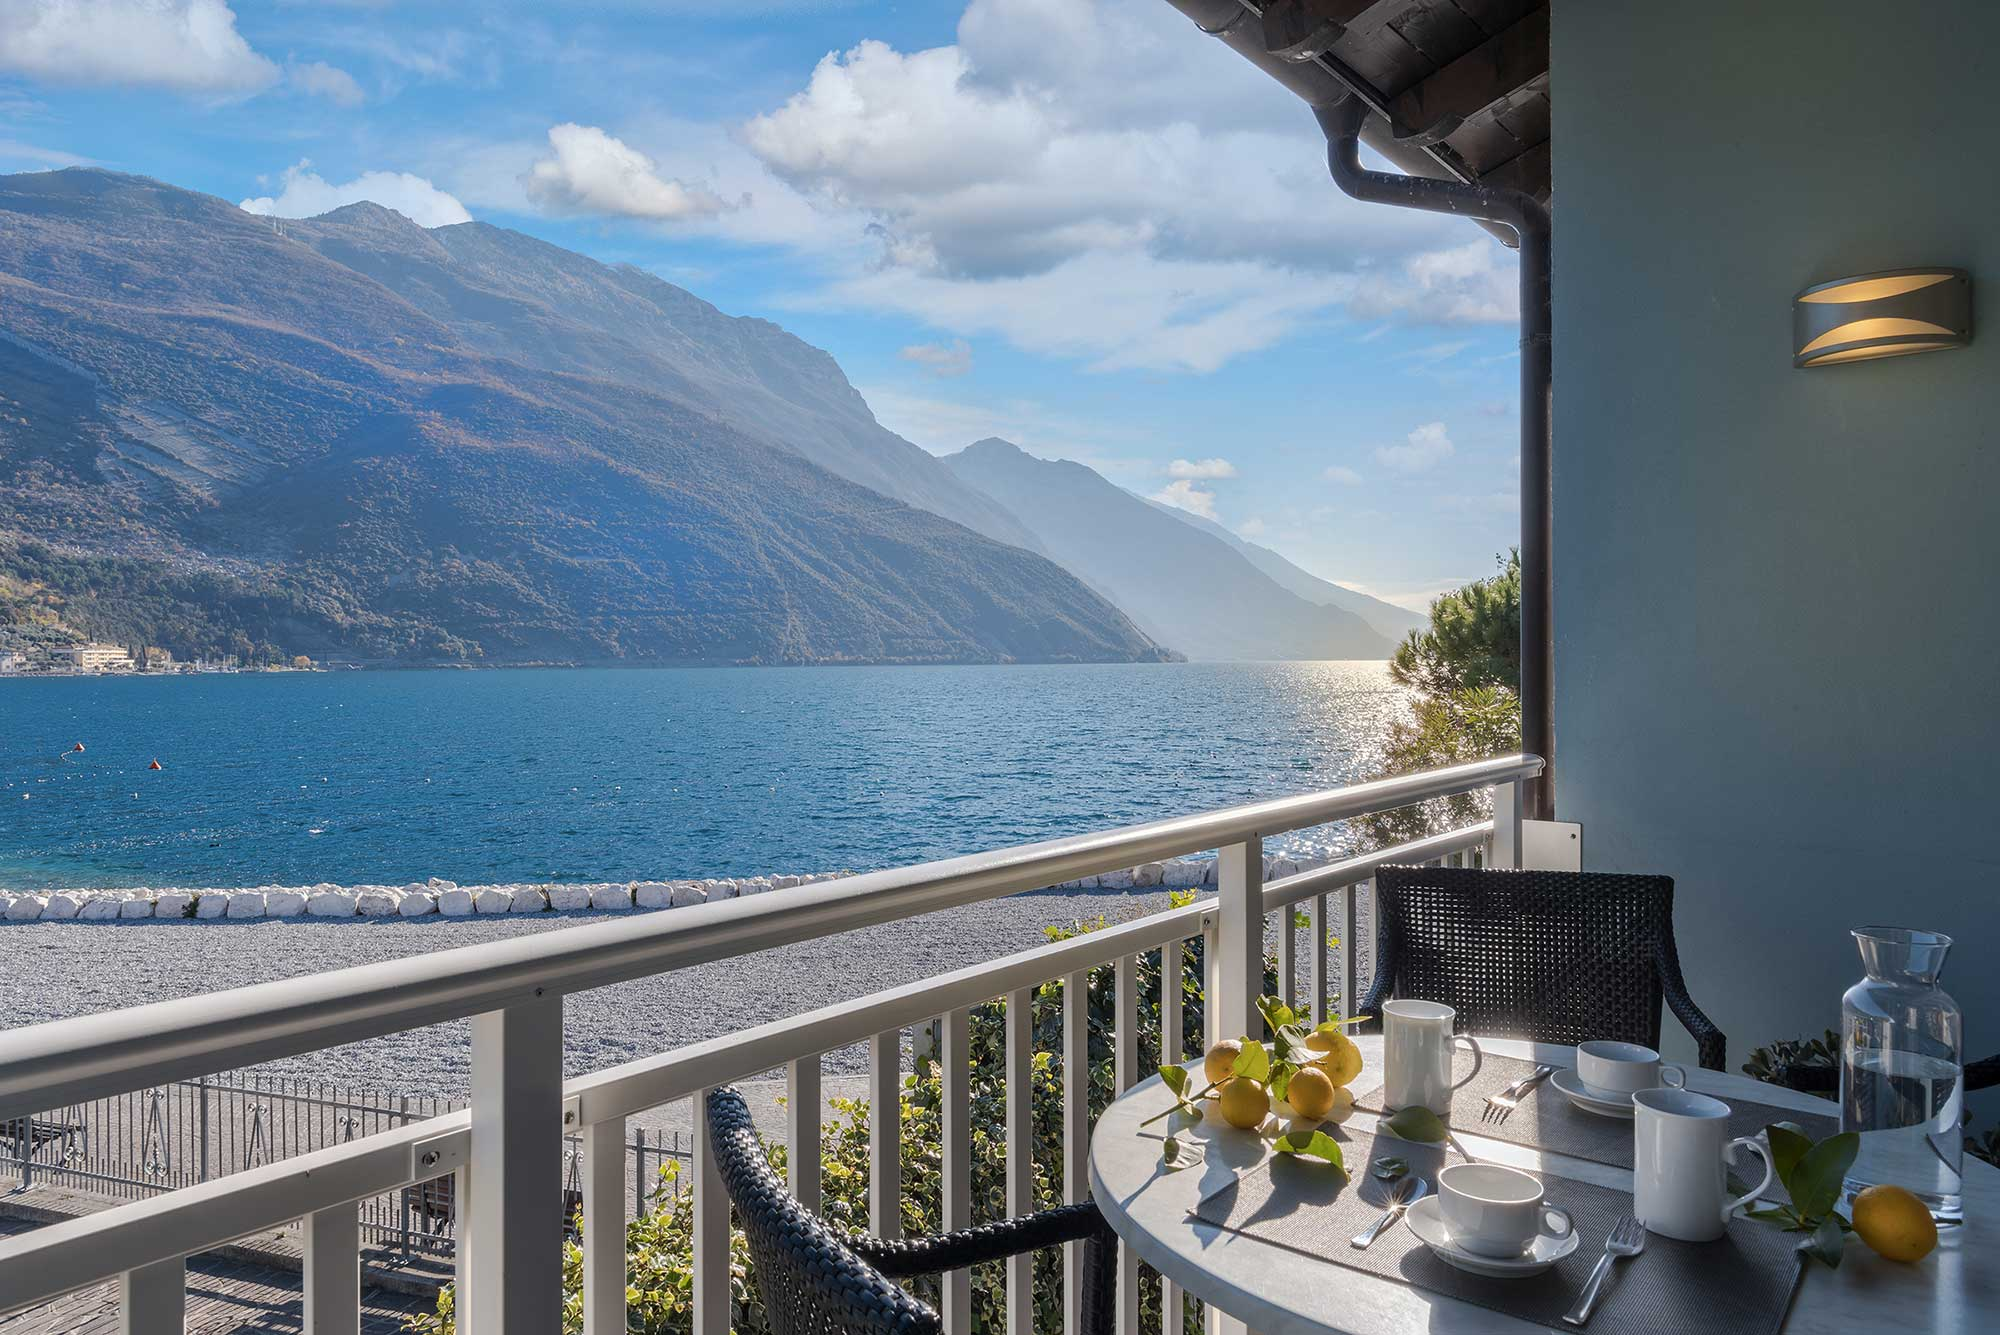 May and June 2021: Holidays to spend on Lake Garda